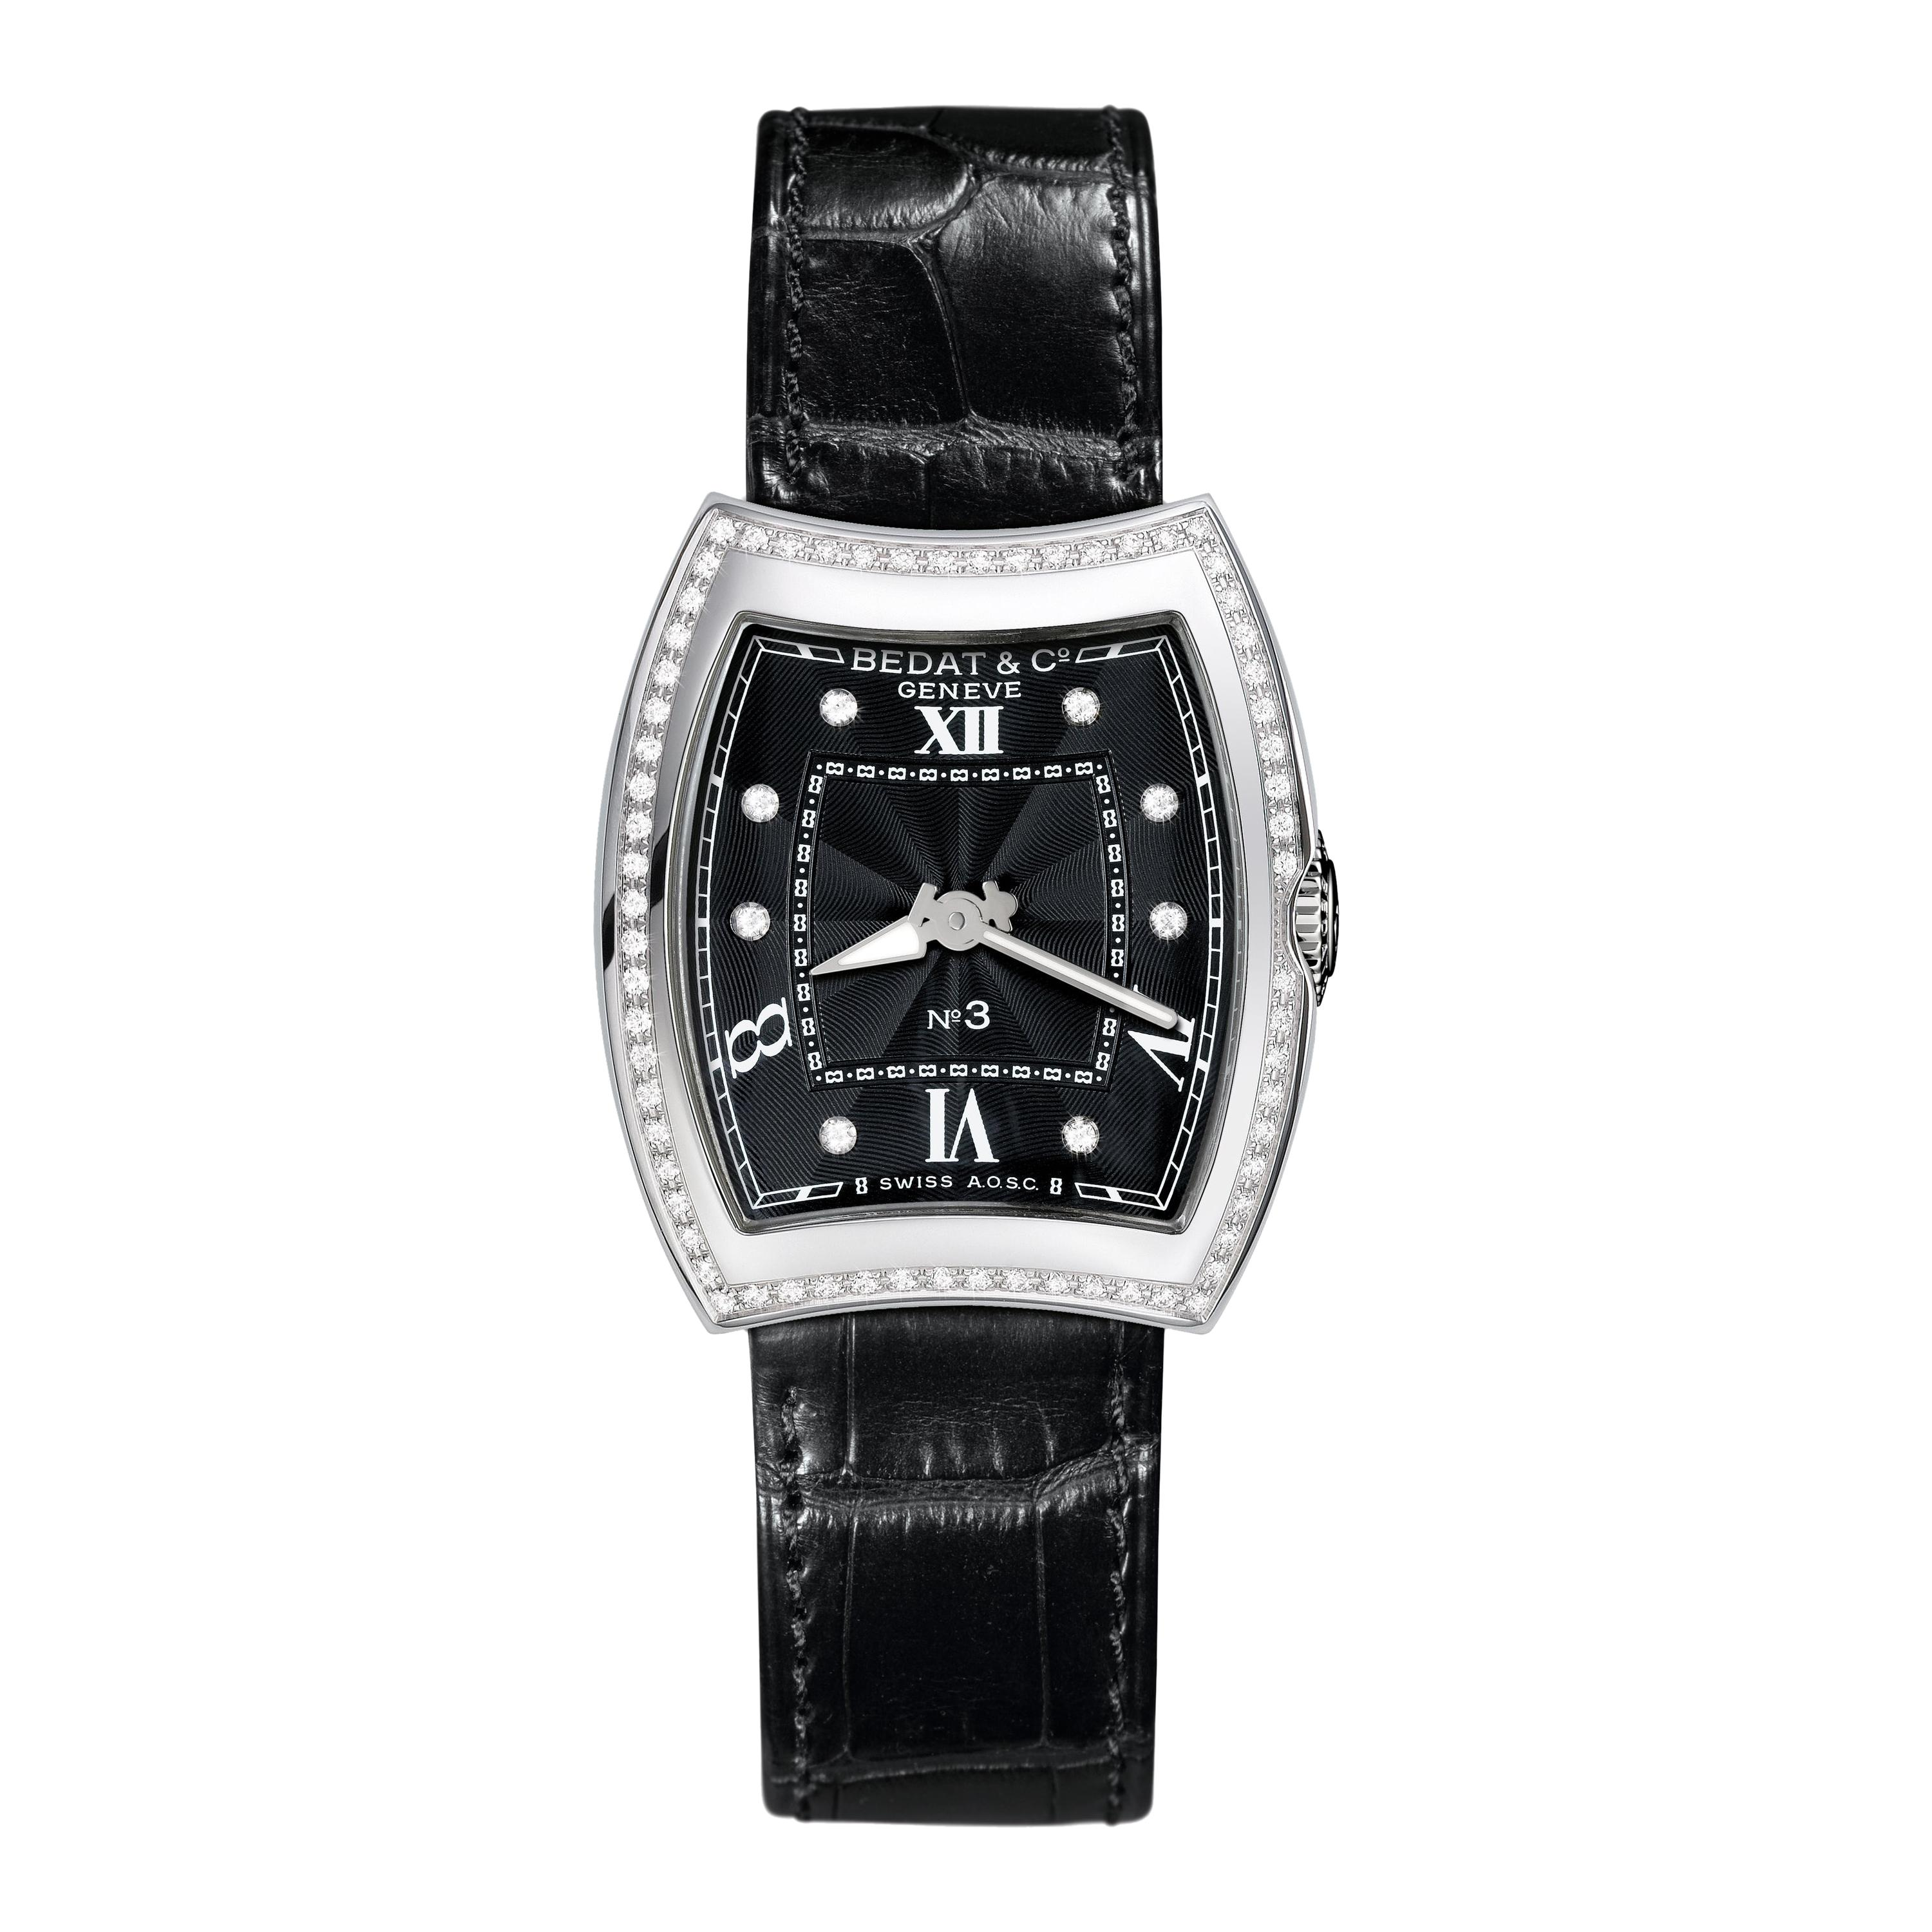 Bedat & Co. Geneve Lady's Watch No. 3 Style#316020309